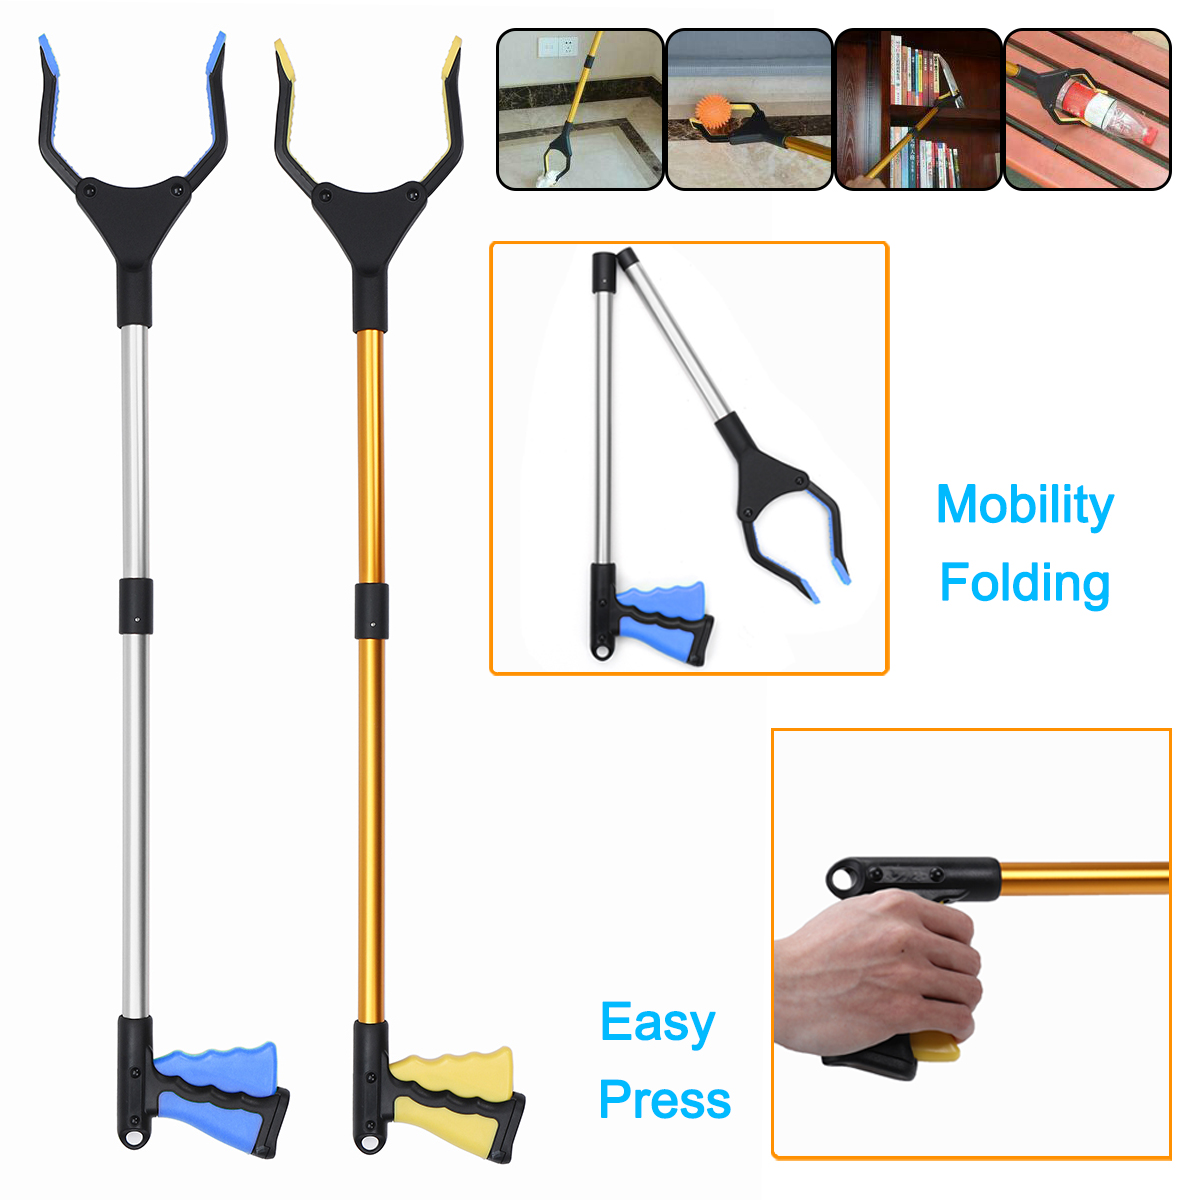 Strong Magnetic Pick Up Tool-18/'/' Long-Great For Hard To Reach Places USA SELLER